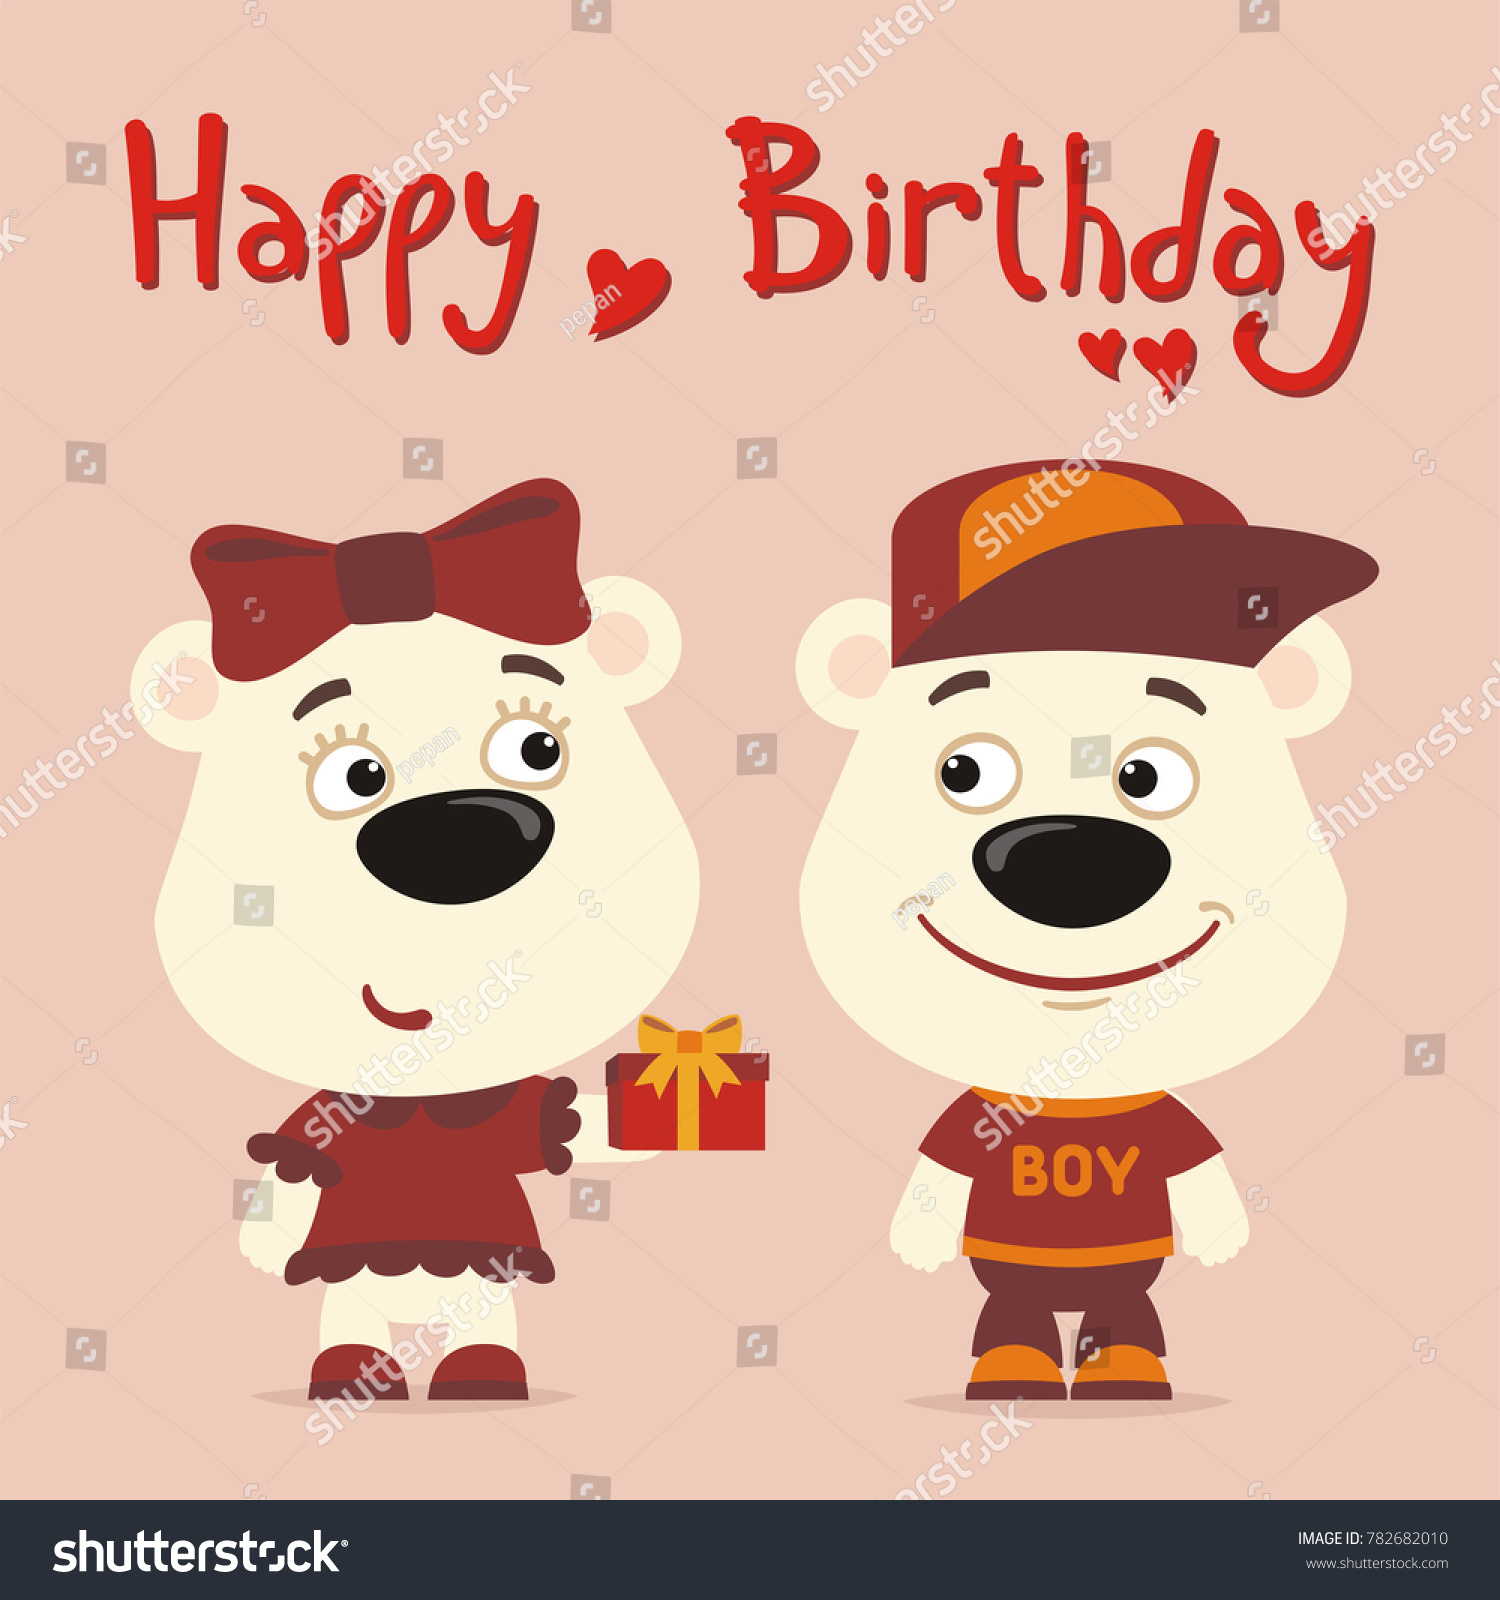 Happy birthday greeting card funny polar stock vector 782682010 happy birthday greeting card funny polar bear girl gives gift to boy polar bear kristyandbryce Image collections